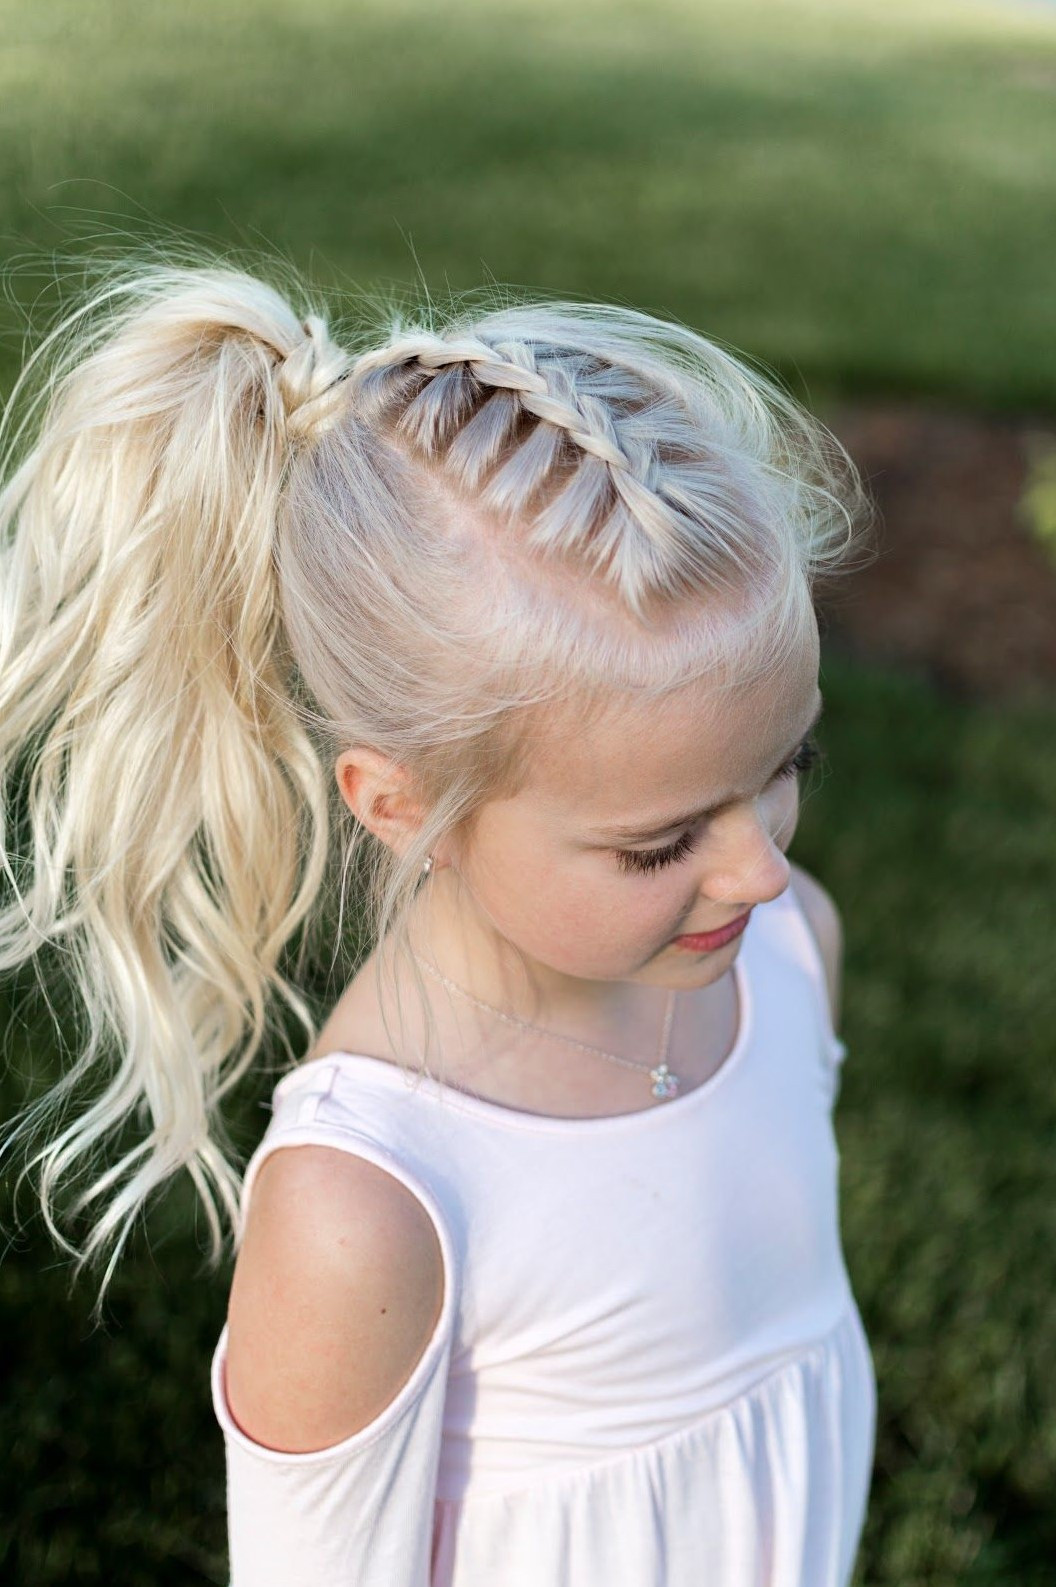 41+ Adorable Hairstyles for Little Girls - Sensod